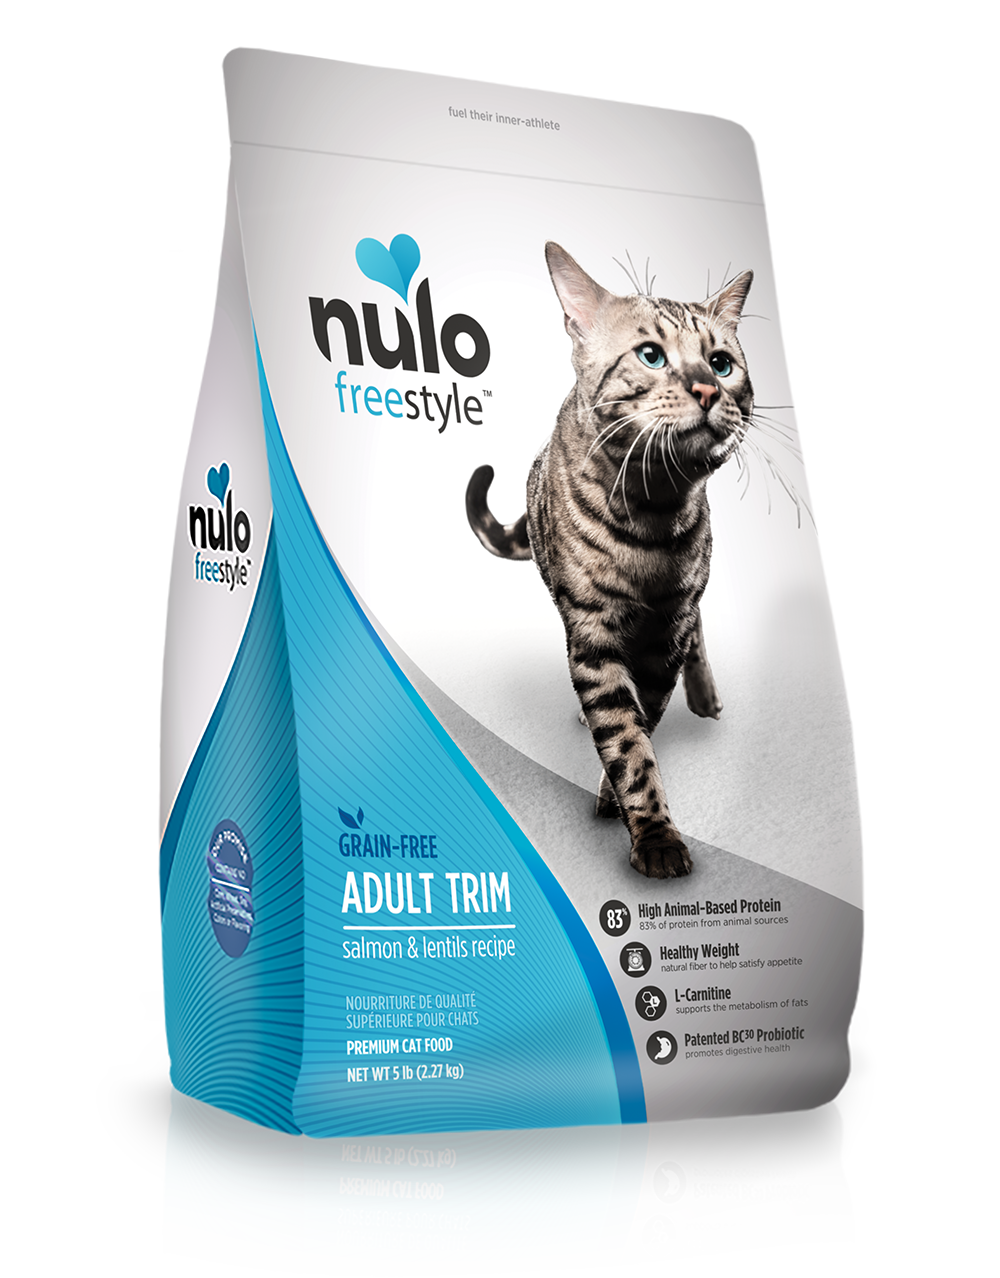 Nulo freestyle cat trim